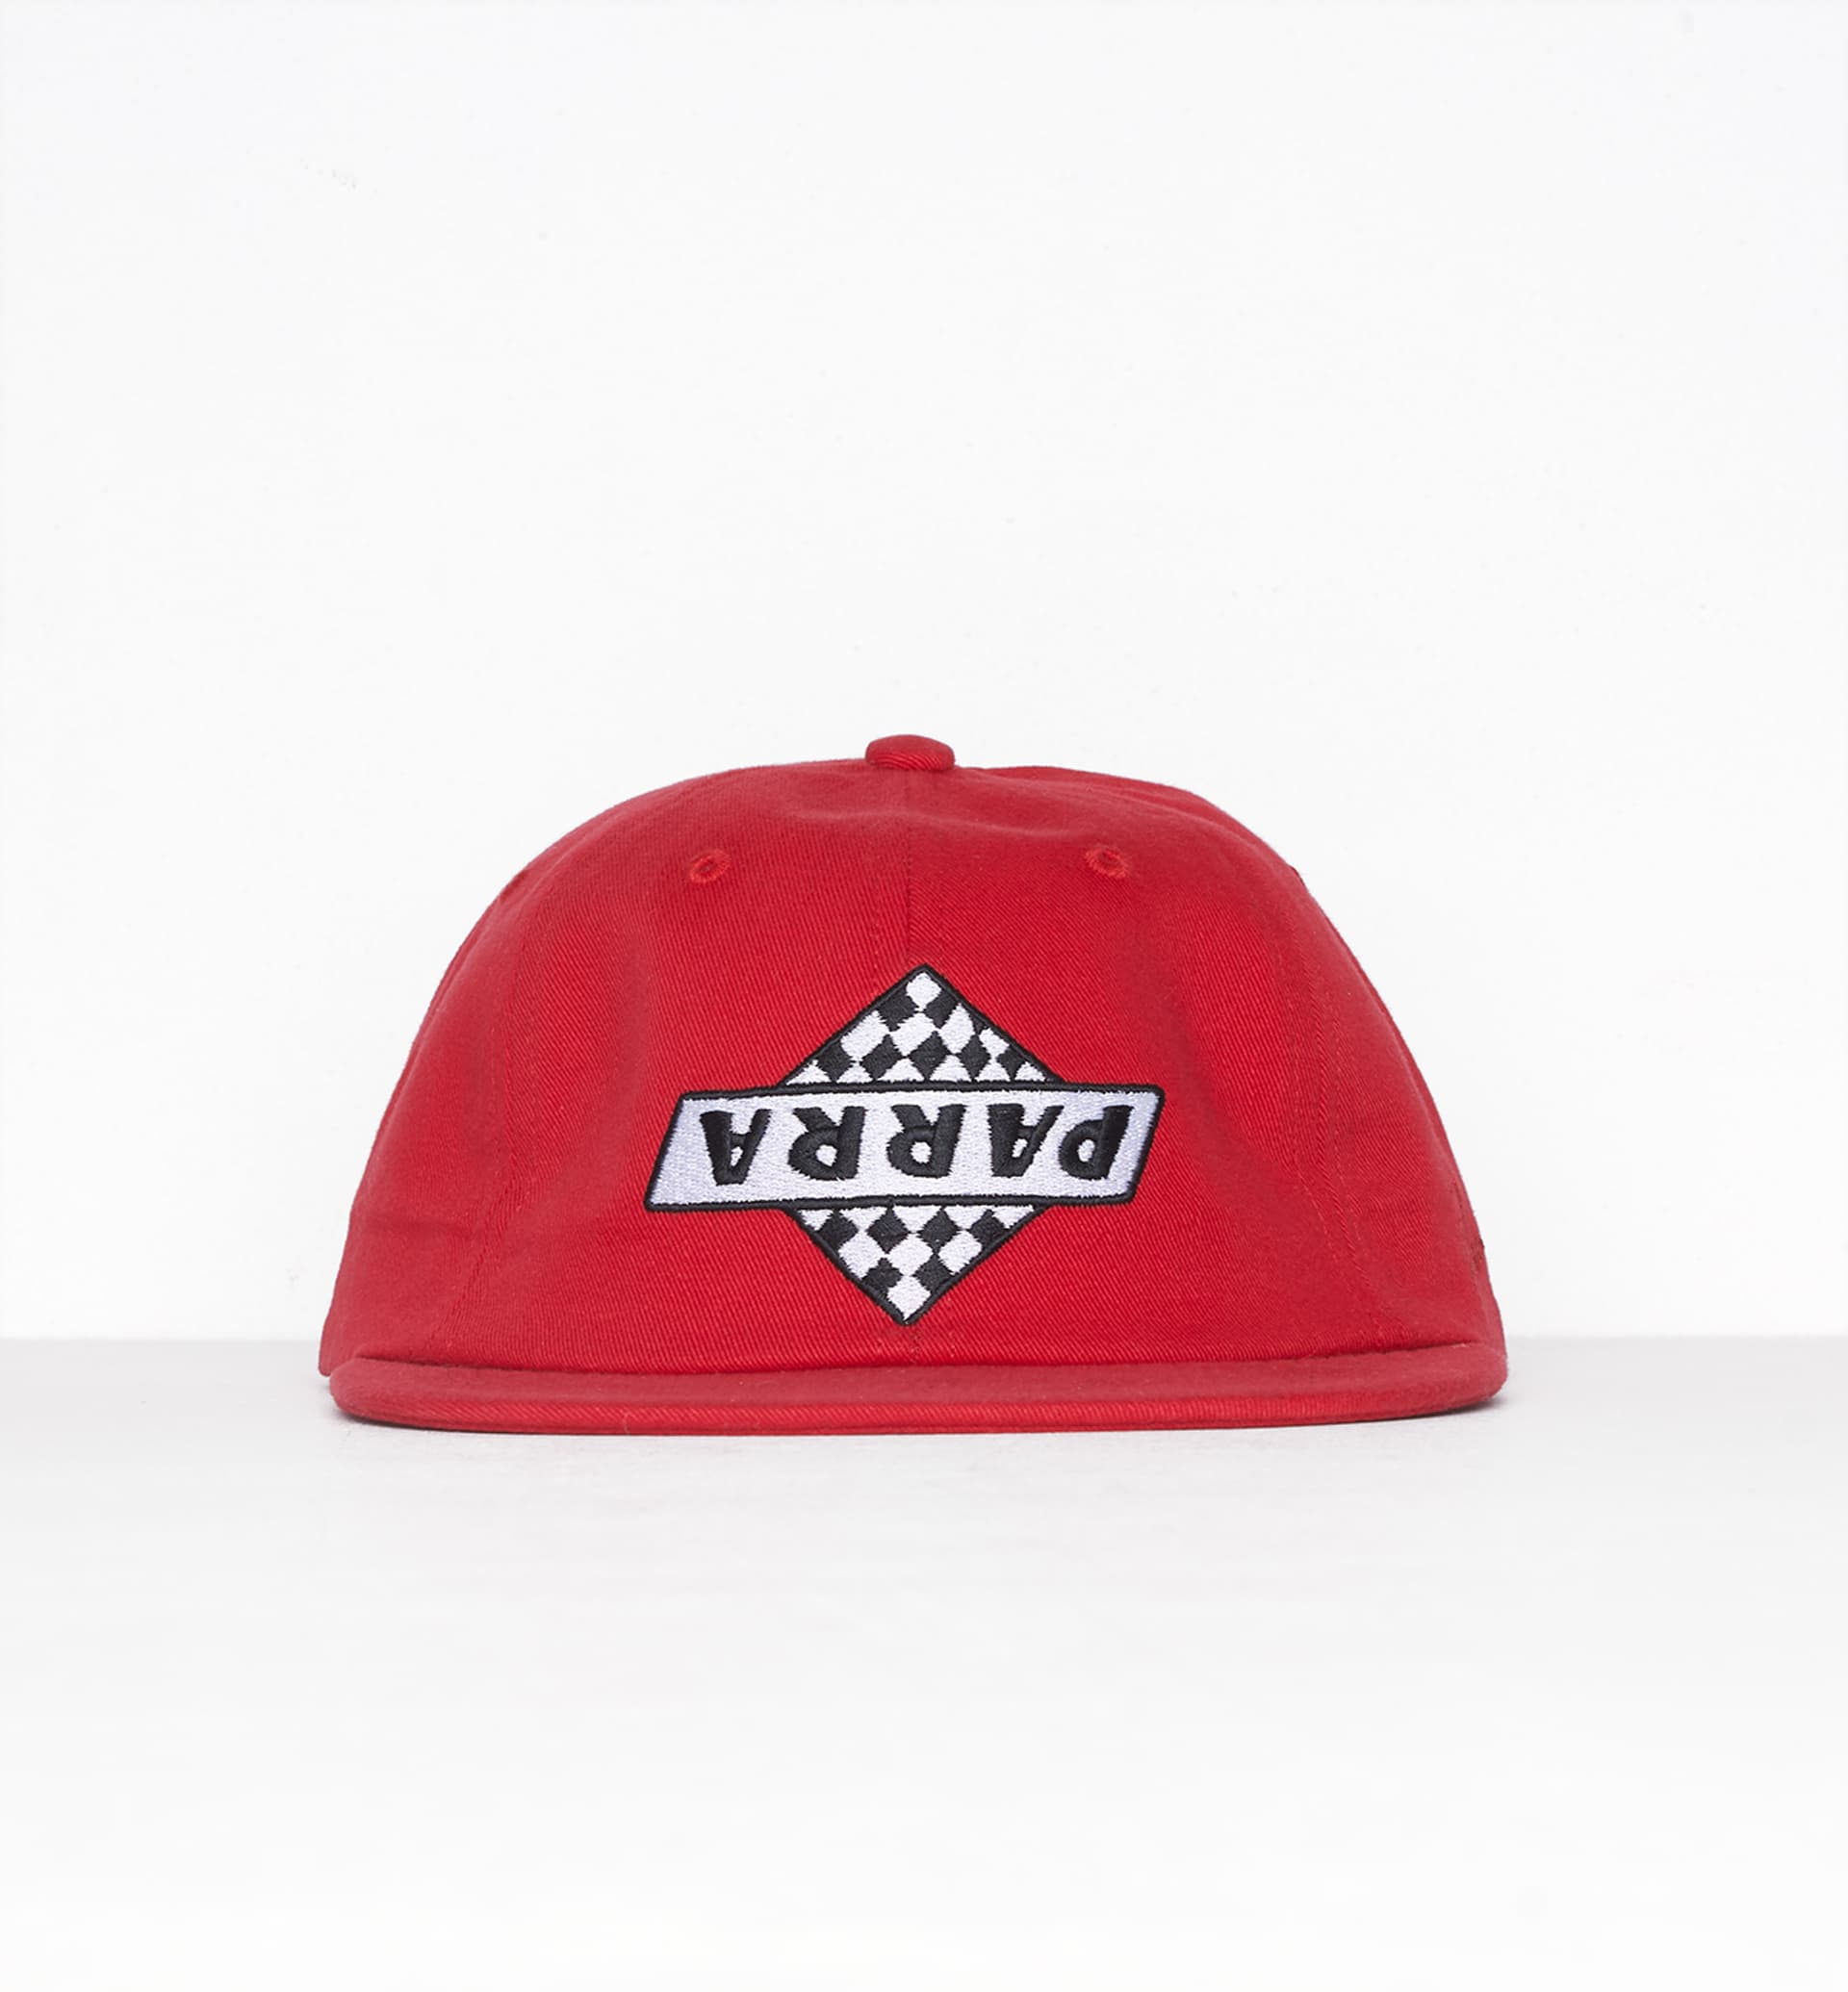 Parra - not racing 6 panel hat